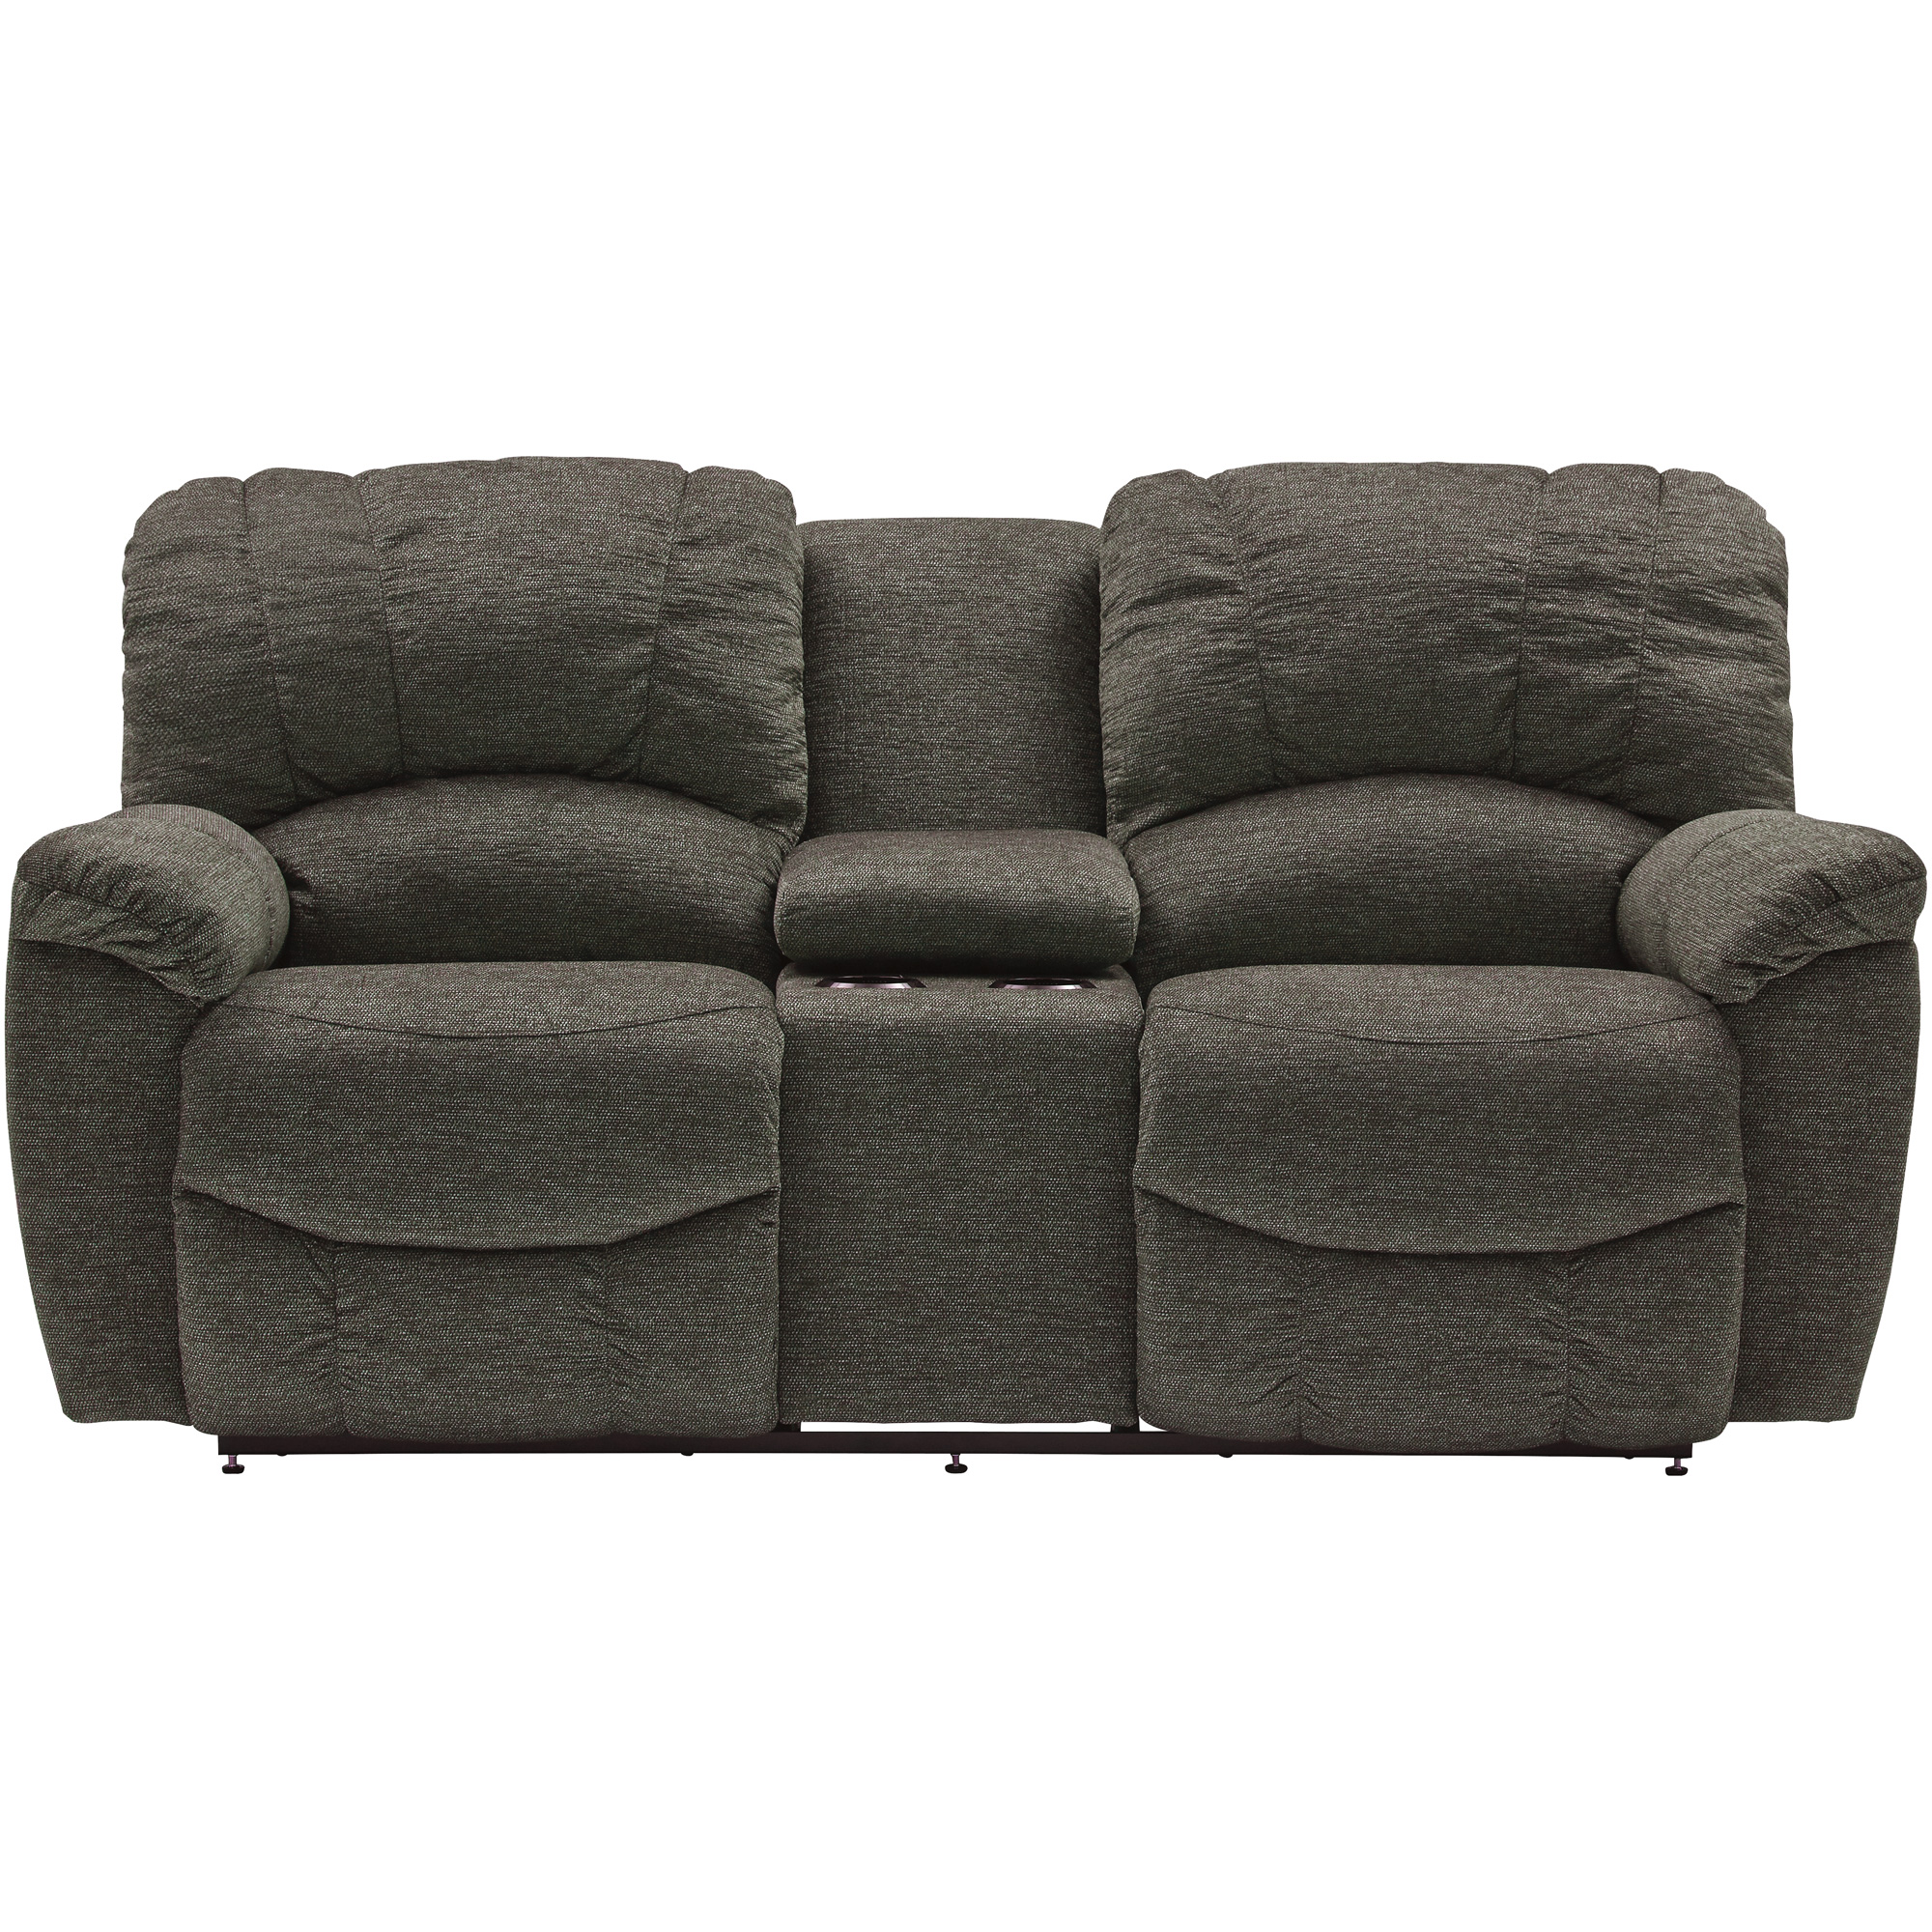 La-Z-Boy | Hayes Sable Reclining Console Loveseat Sofa